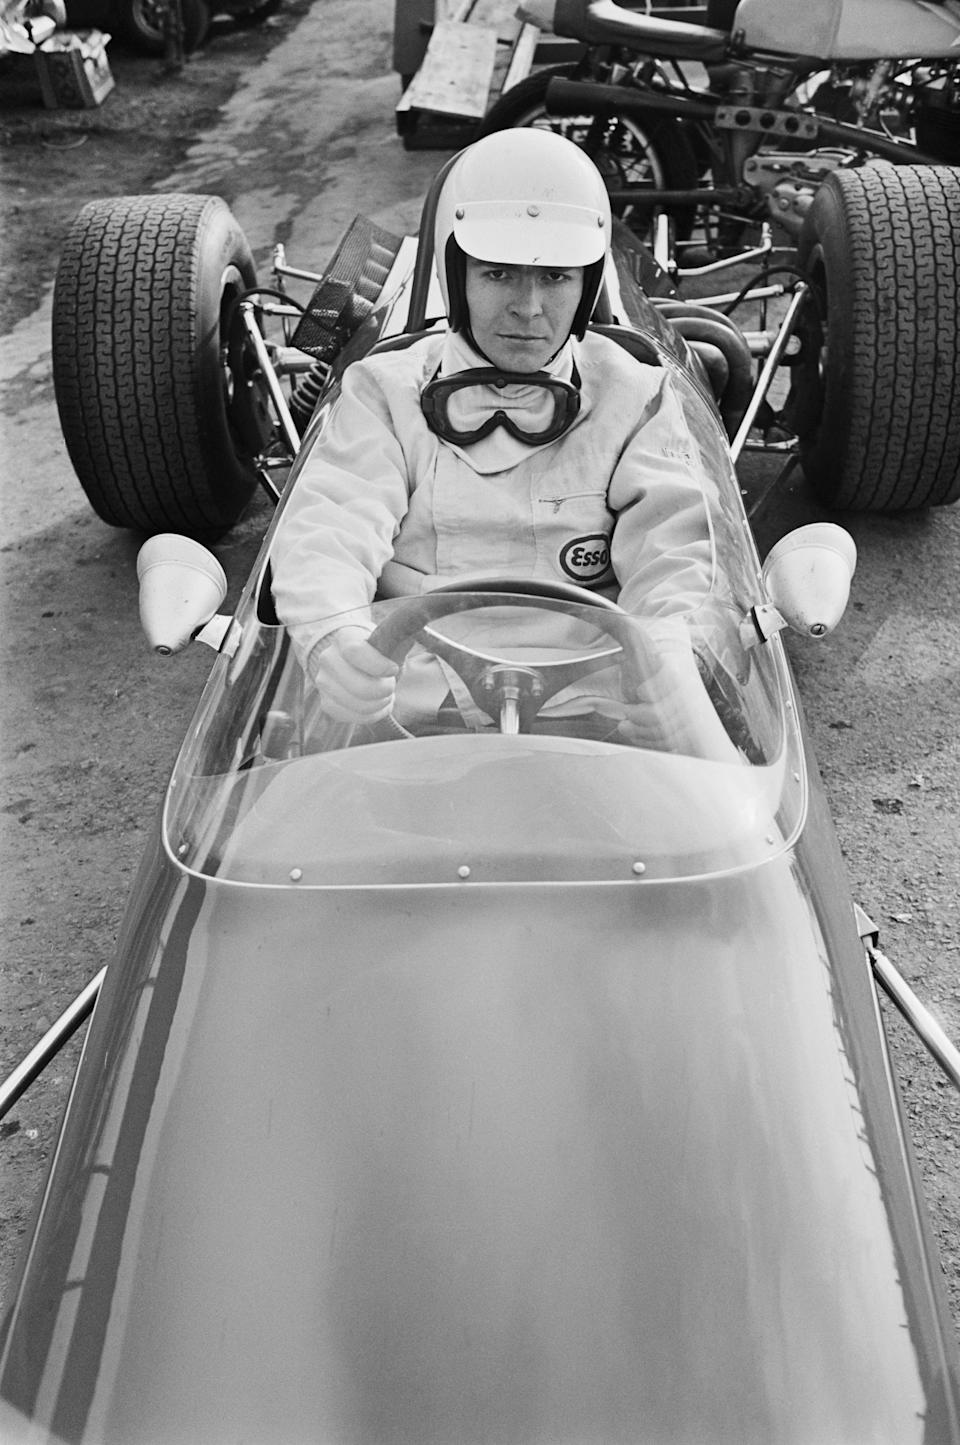 Racing driver Max Mosley tests out a sportscar in 1968.Getty Images